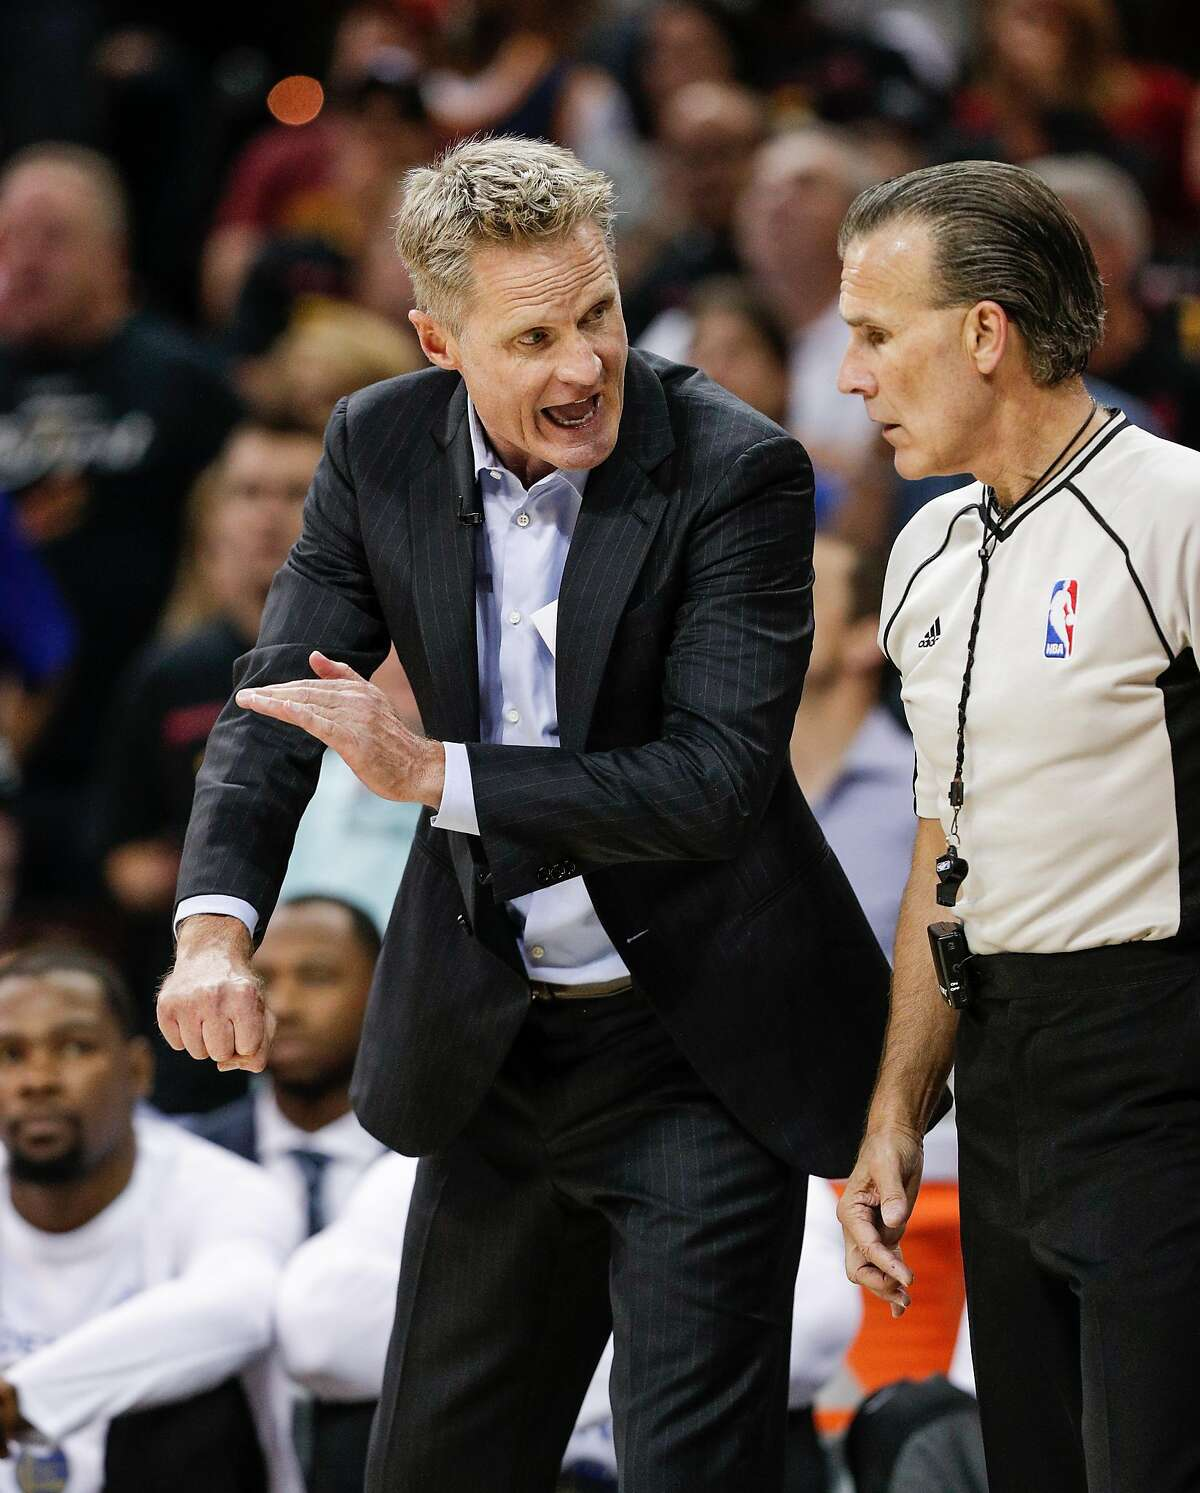 Golden State Warriors' Head Coach Steve Kerr talks to referee Ken Mauer in the second quarter during Game 3 of the 2017 NBA Finals at Quicken Loans Arena on Wednesday, June 7, 2017 in Cleveland, Ohio